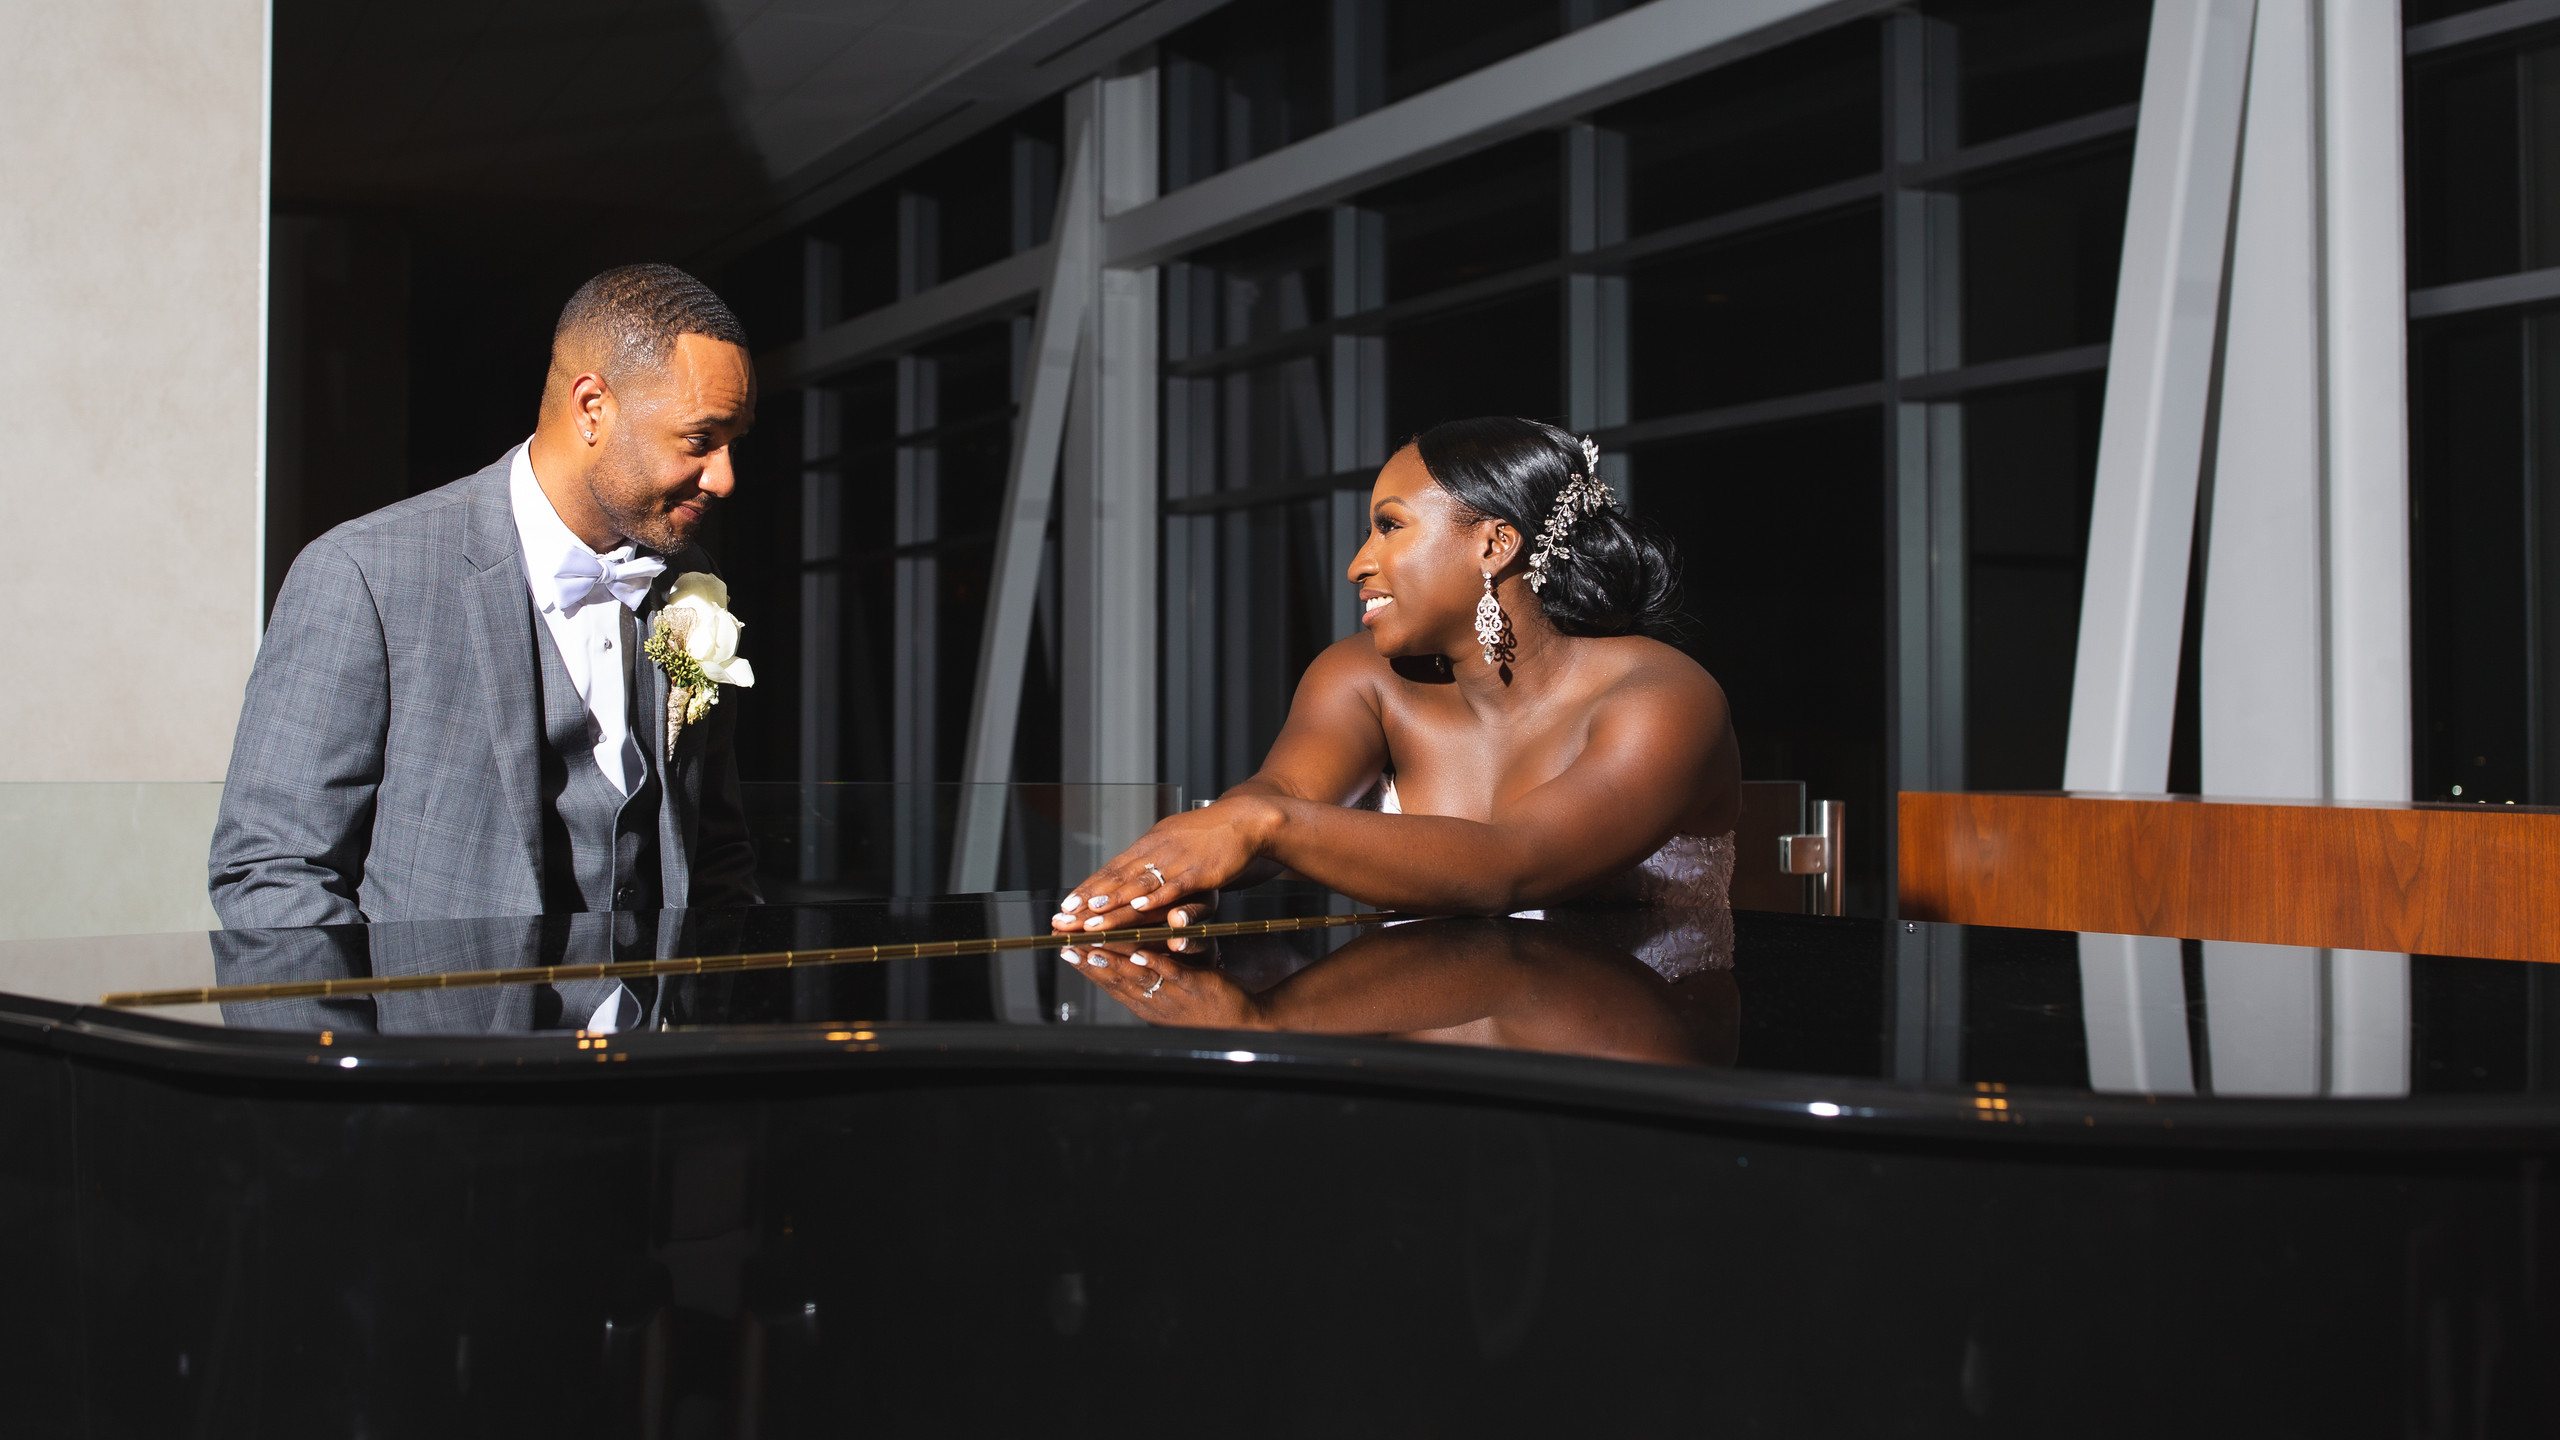 The bride and groom pose for a portrait at a piano during the wedding reception at the Hilton Main in Norfolk, Virginia.